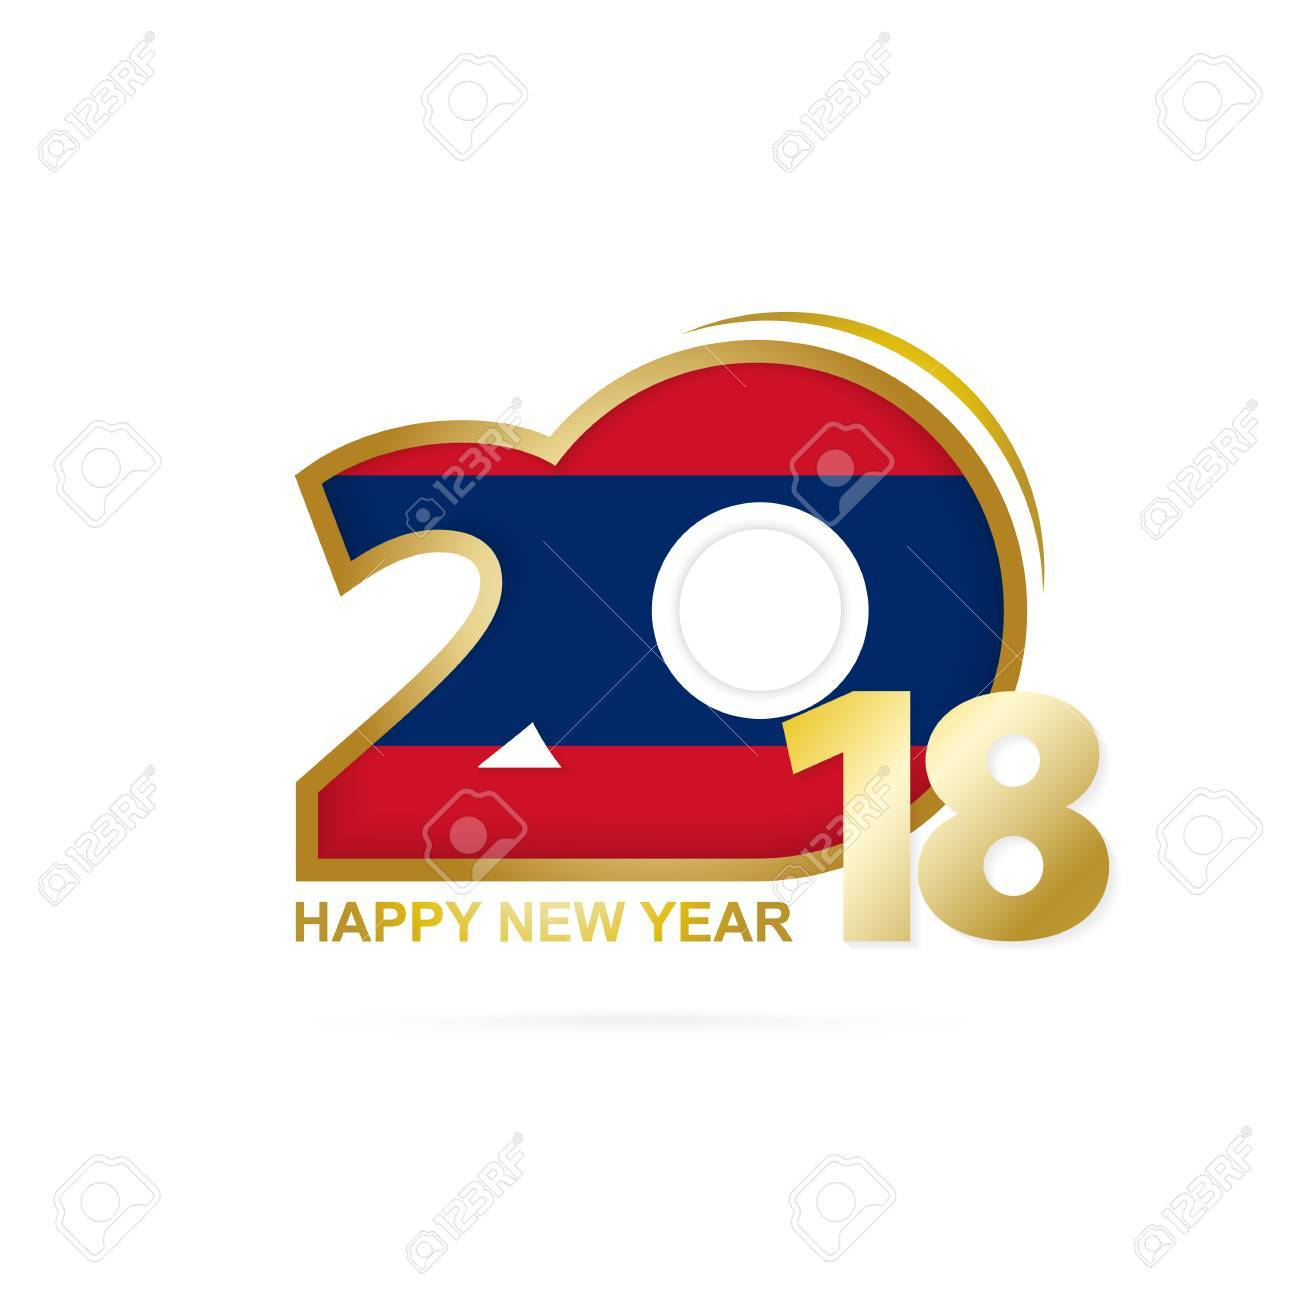 Year 2018 with Laos Flag pattern. Happy New Year Design. Vector Illustration. - 87740095